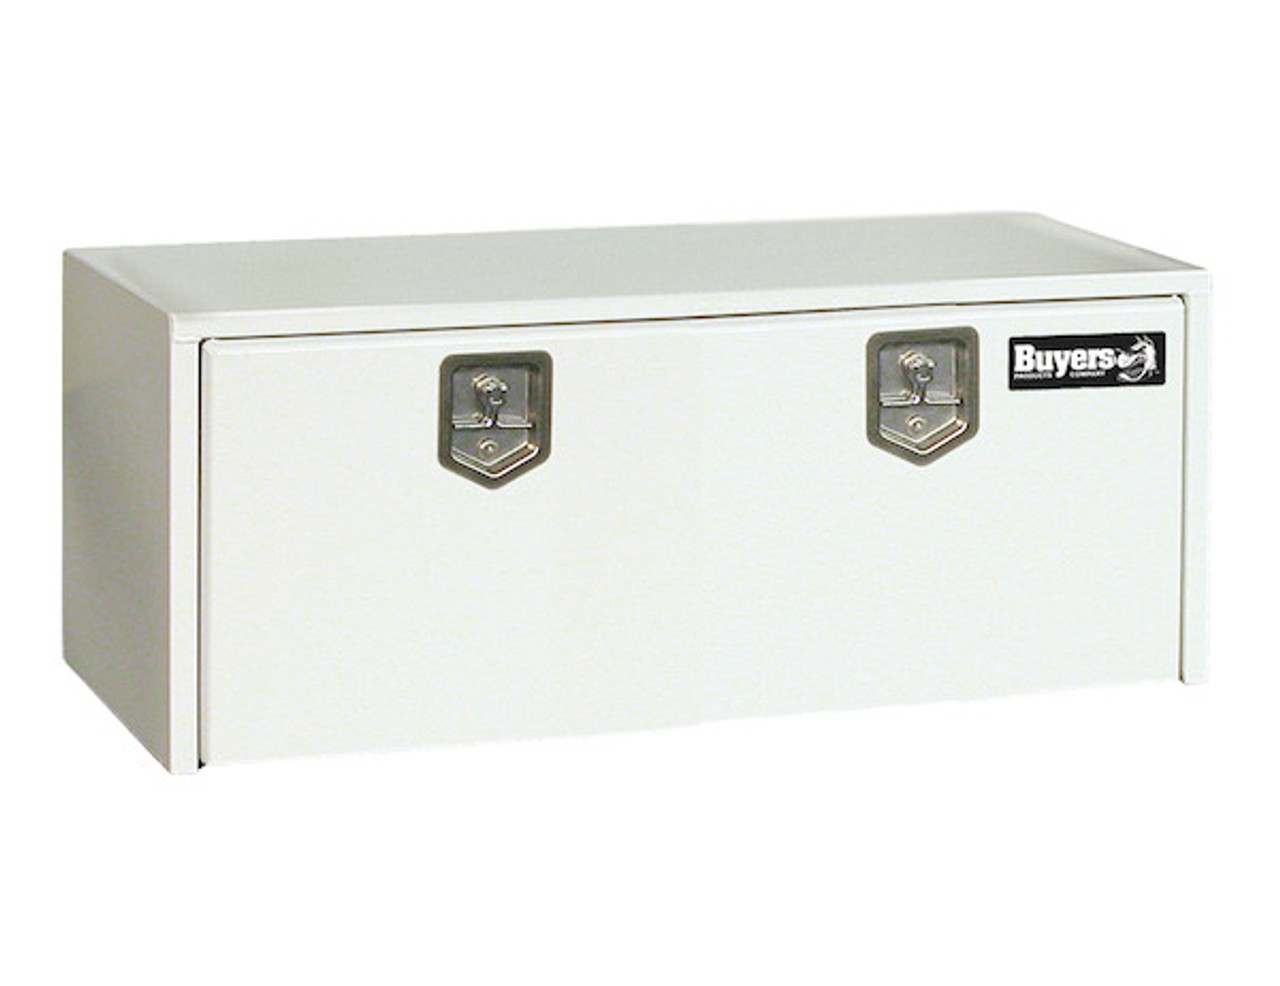 "1702415 BUYERS PRODUCTS WHITE STEEL UNDERBODY TRUCK TOOLBOX 18""HX18""DX60""W"